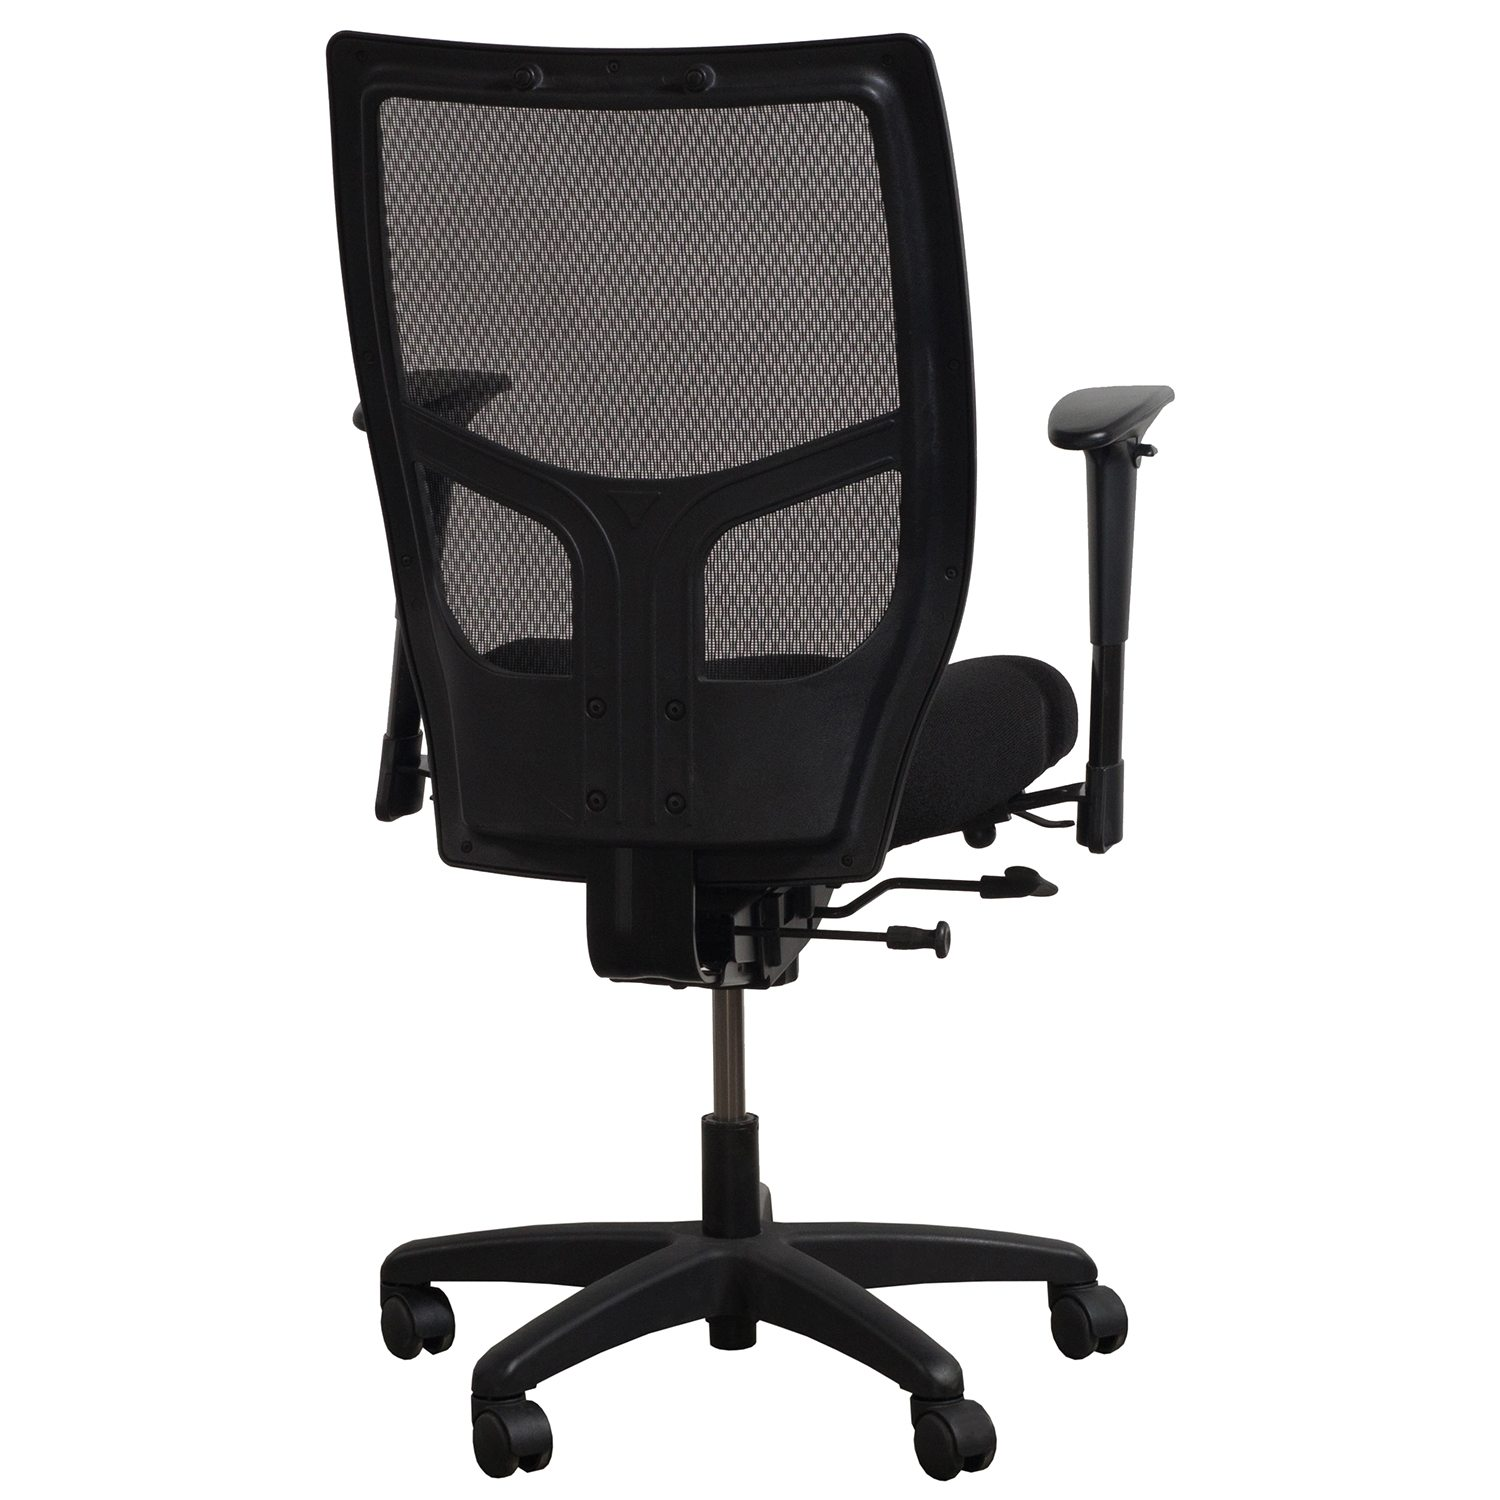 Ki Chairs Ki Impress Ultra Black 03 National Office Interiors And